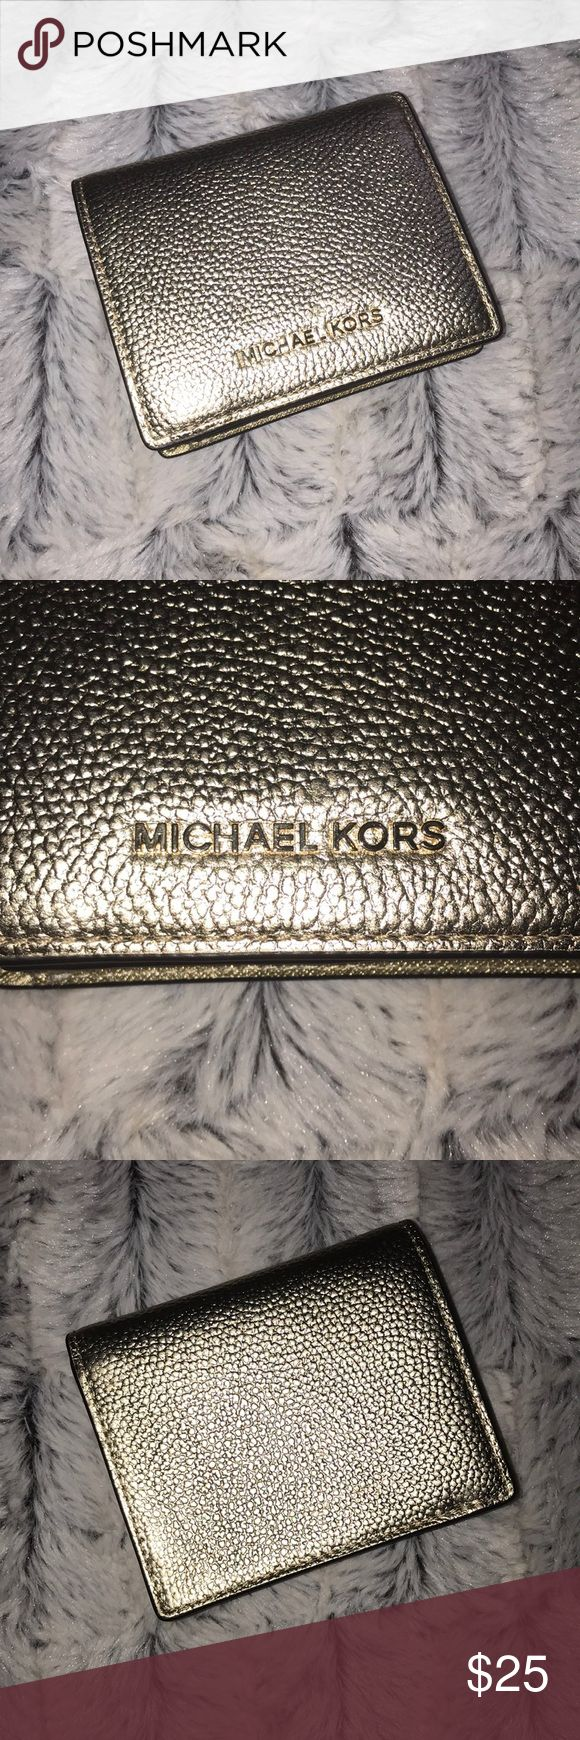 New! Michael Kors Money Pieces Wallet! This wallet is brand new and has never been used! It is about the size of a men's wallet. Super cute! It is gold. But when it reflects light, it looks silver. KORS Michael Kors Bags Wallets